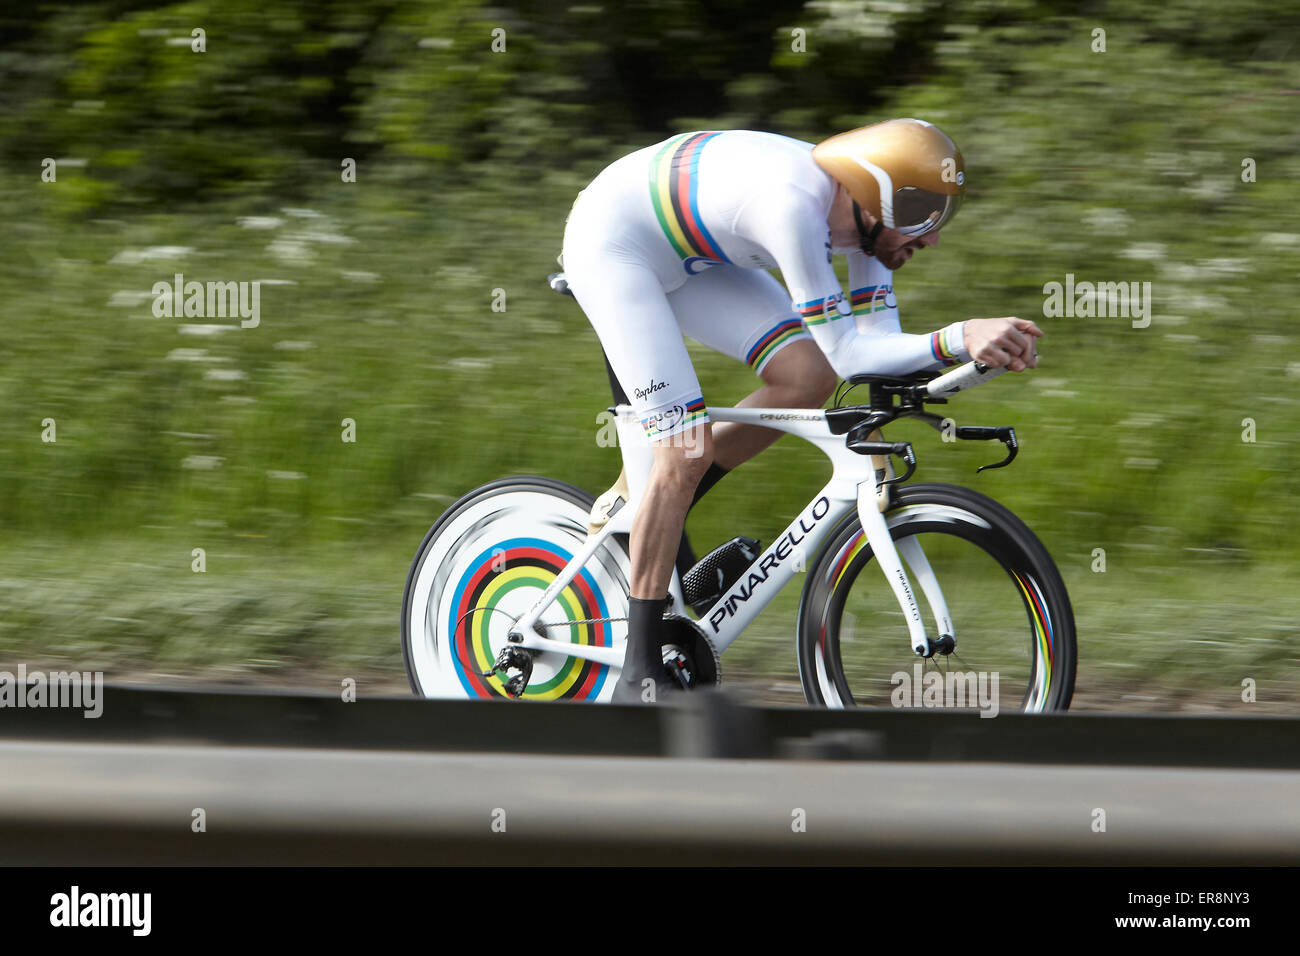 Bradley Wiggins taking part in the City Road Club 10 miles race in South Cave, East Yorkshire, in world champion - Stock Image